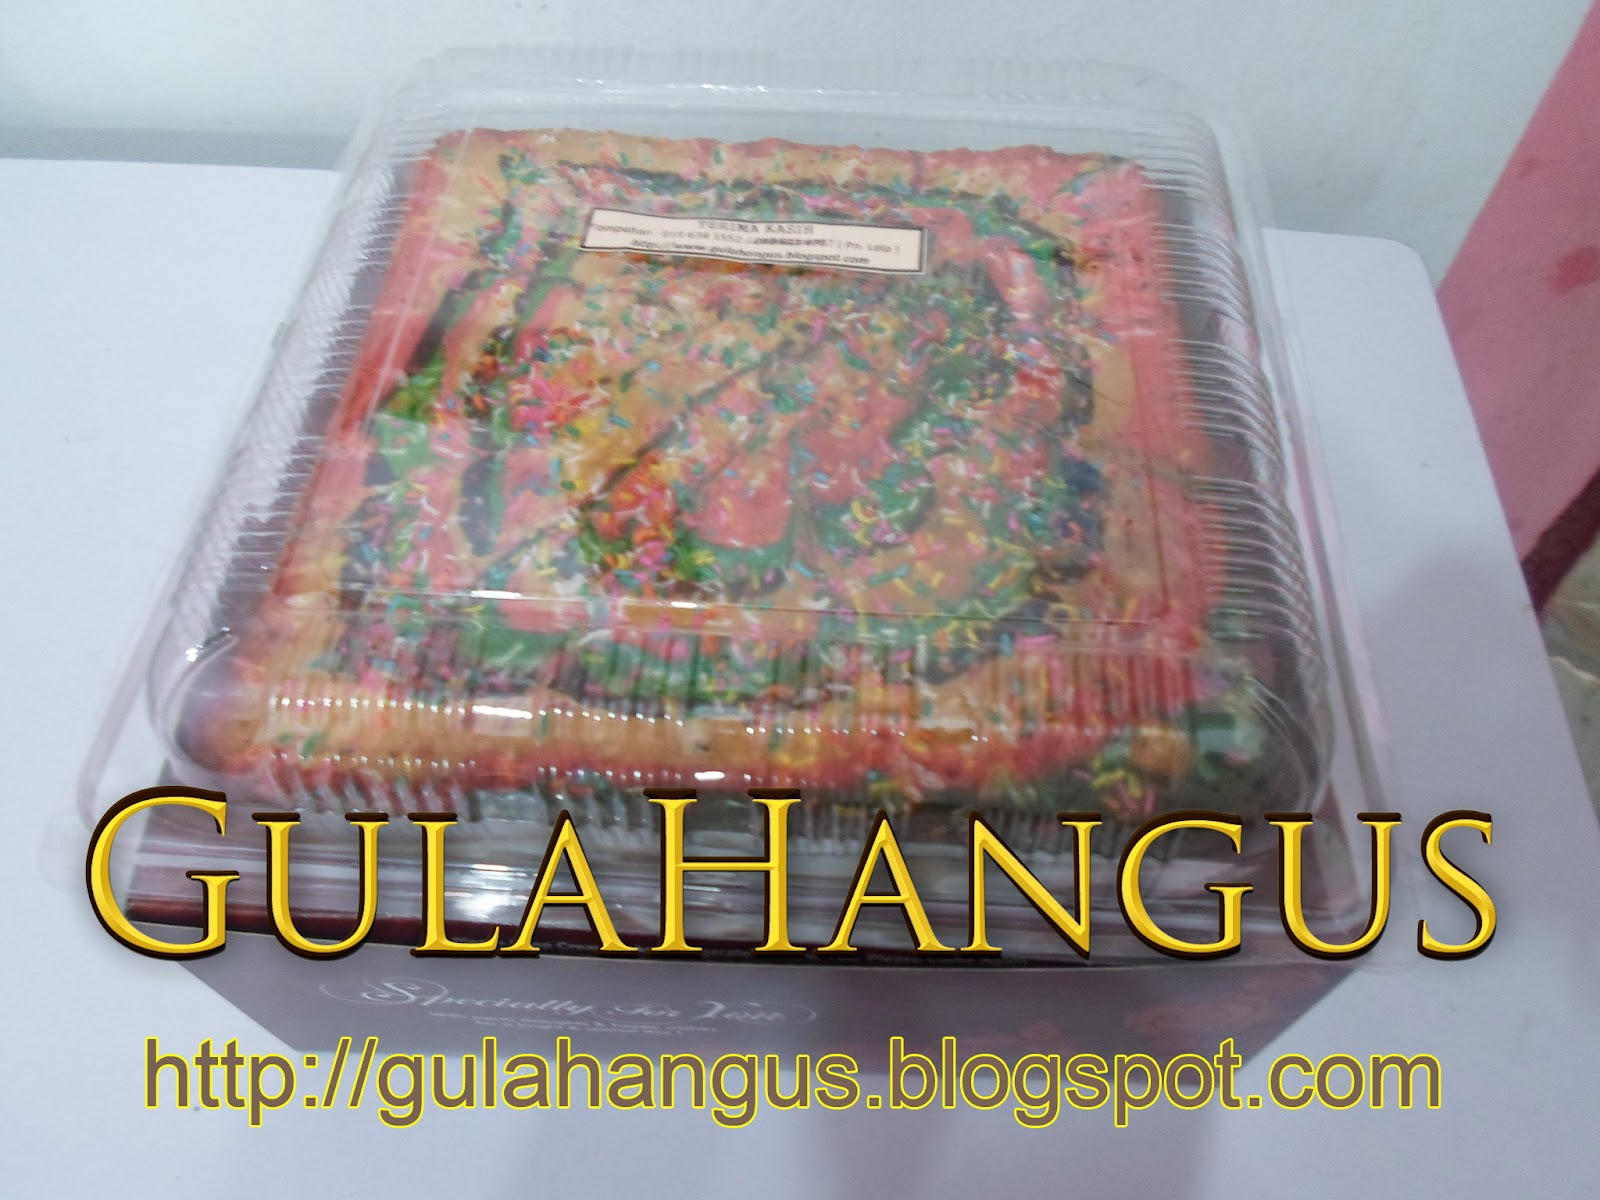 apam pelangii kek coklat puding 1600 x 1200 244 kb jpeg courtesy of